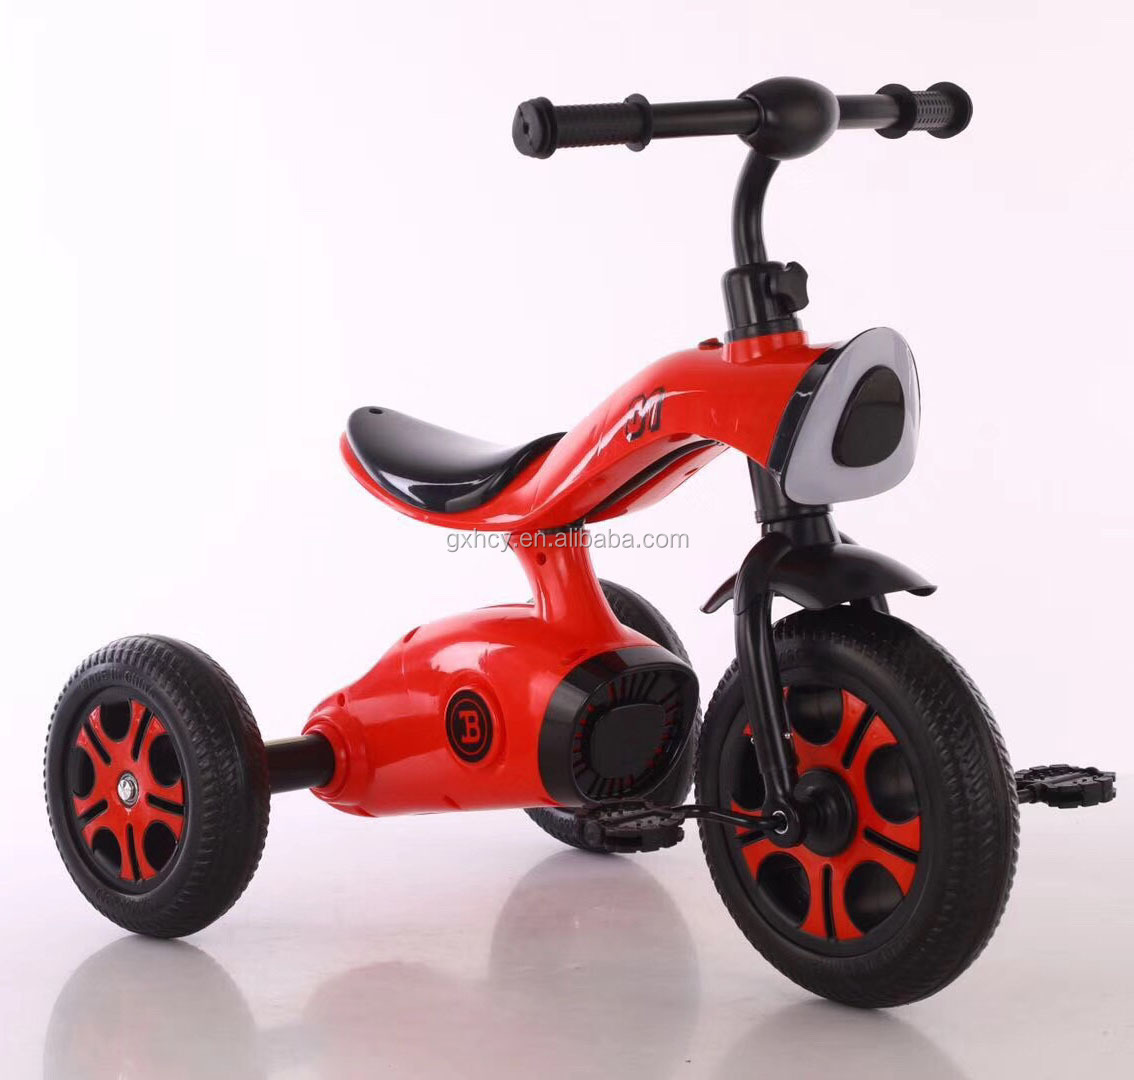 Good Children Trike Tricycle Ride for Ages 3 to 6 years